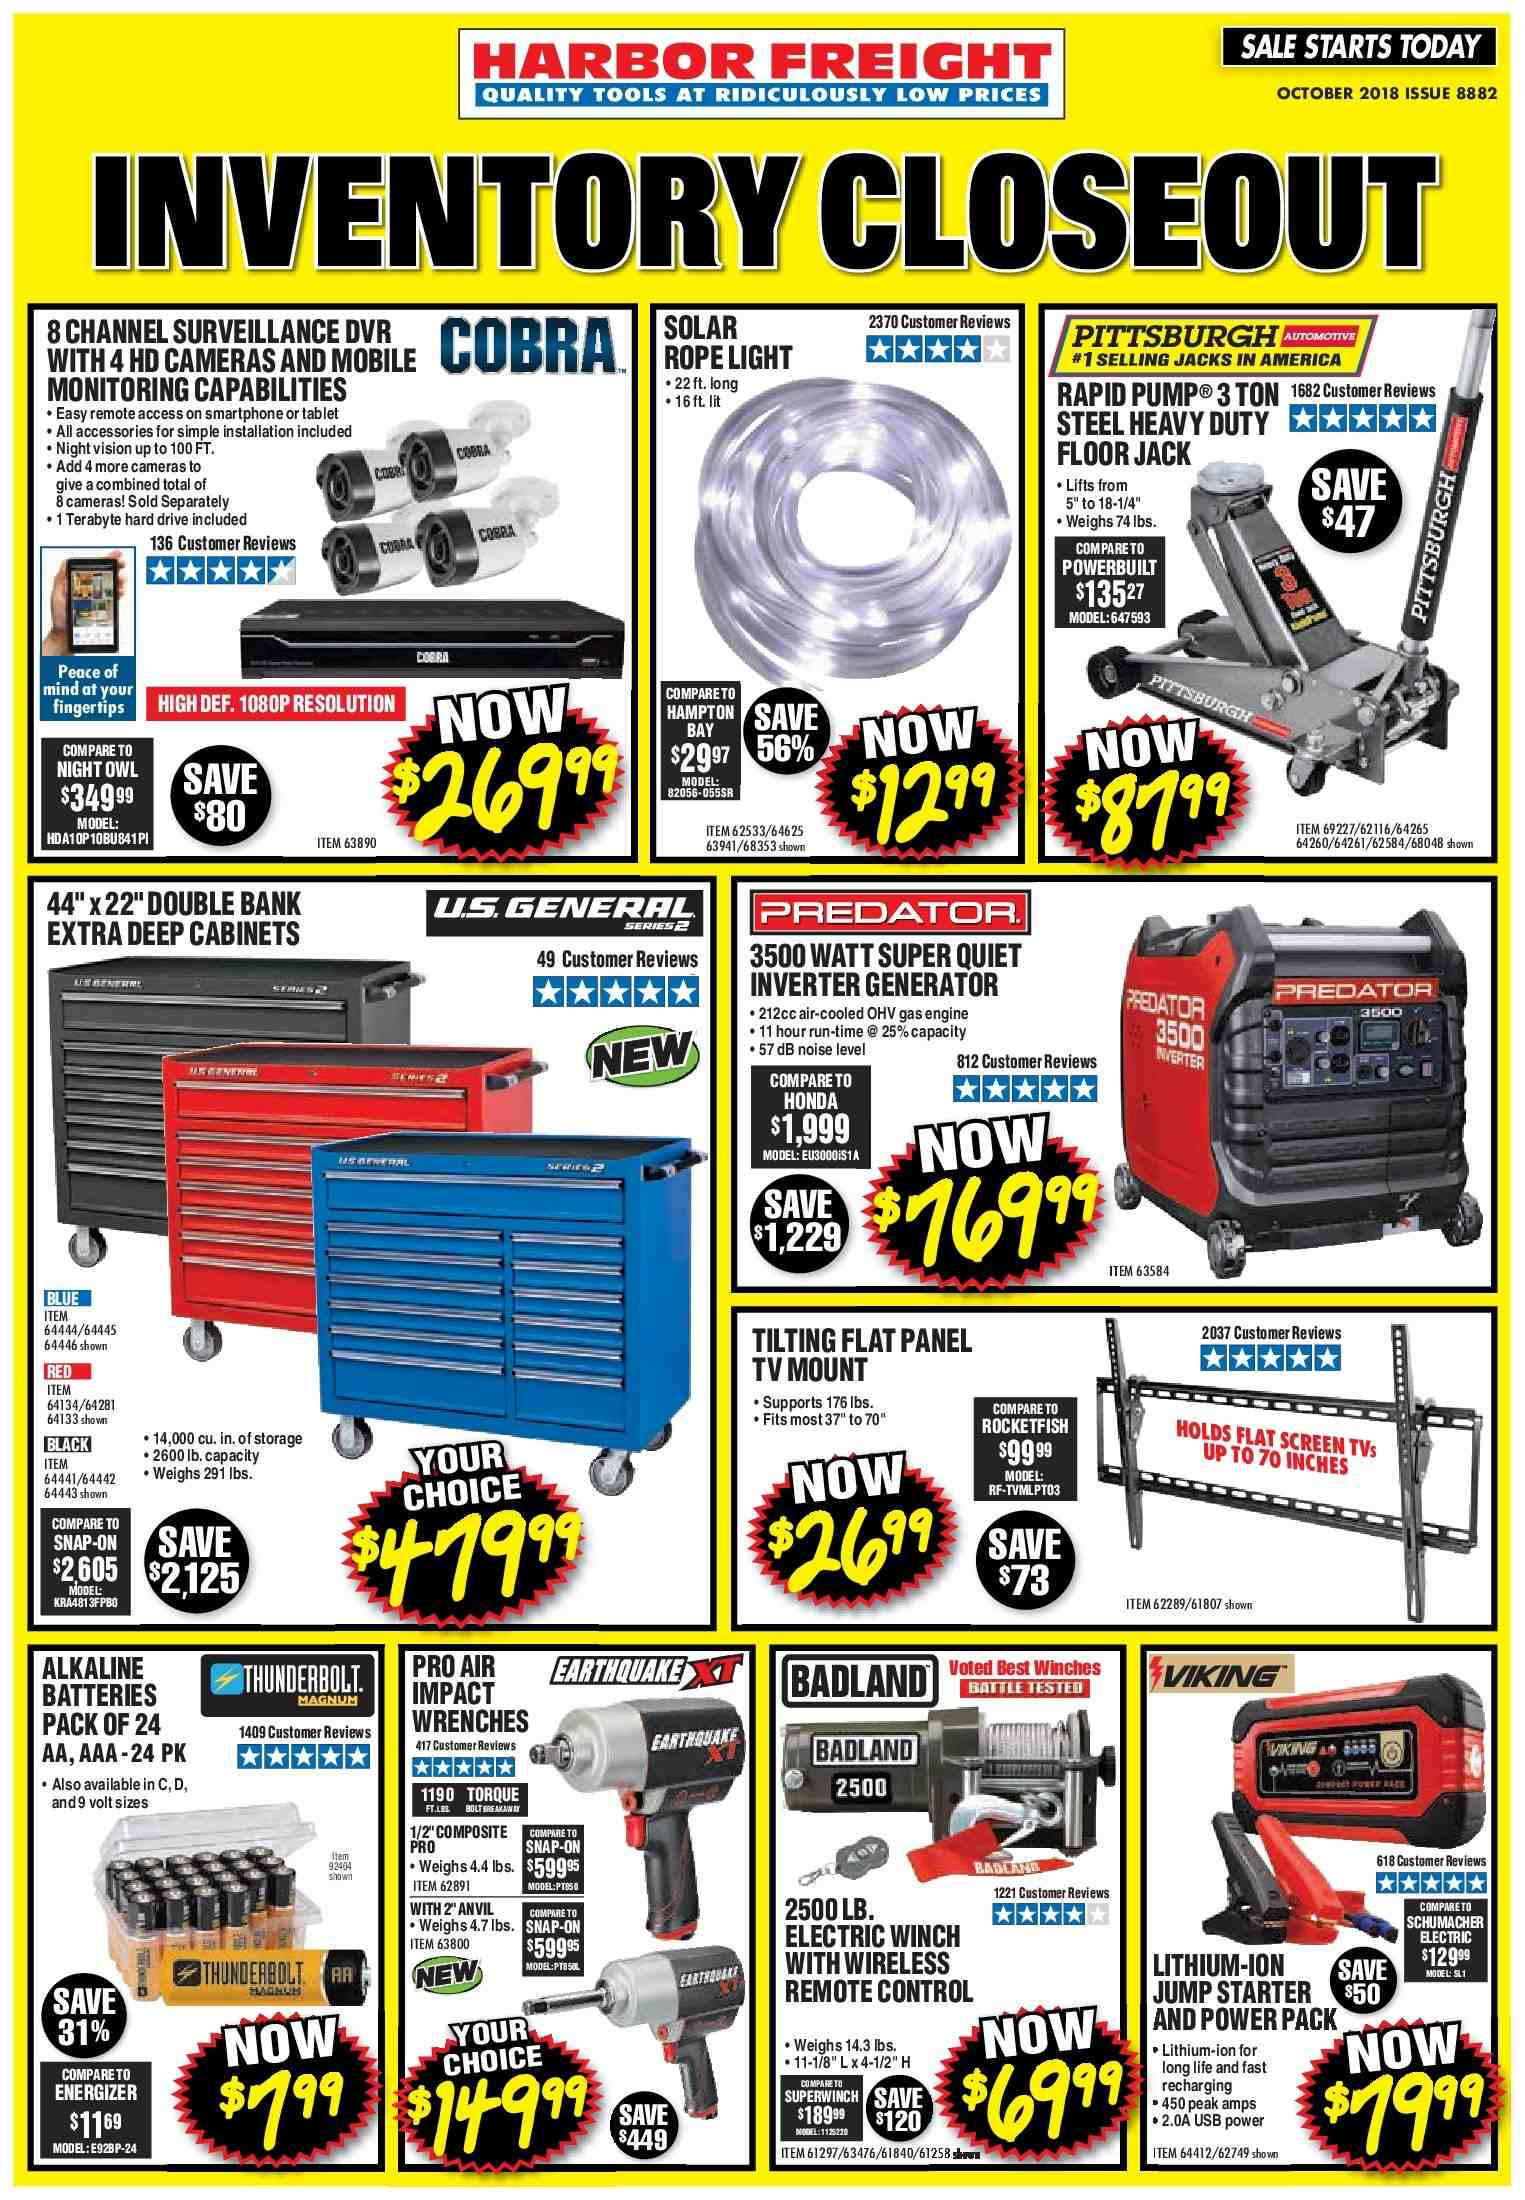 Harbor Freight flyer 10.01.2018 - 10.31.2018   Weekly-ads.us